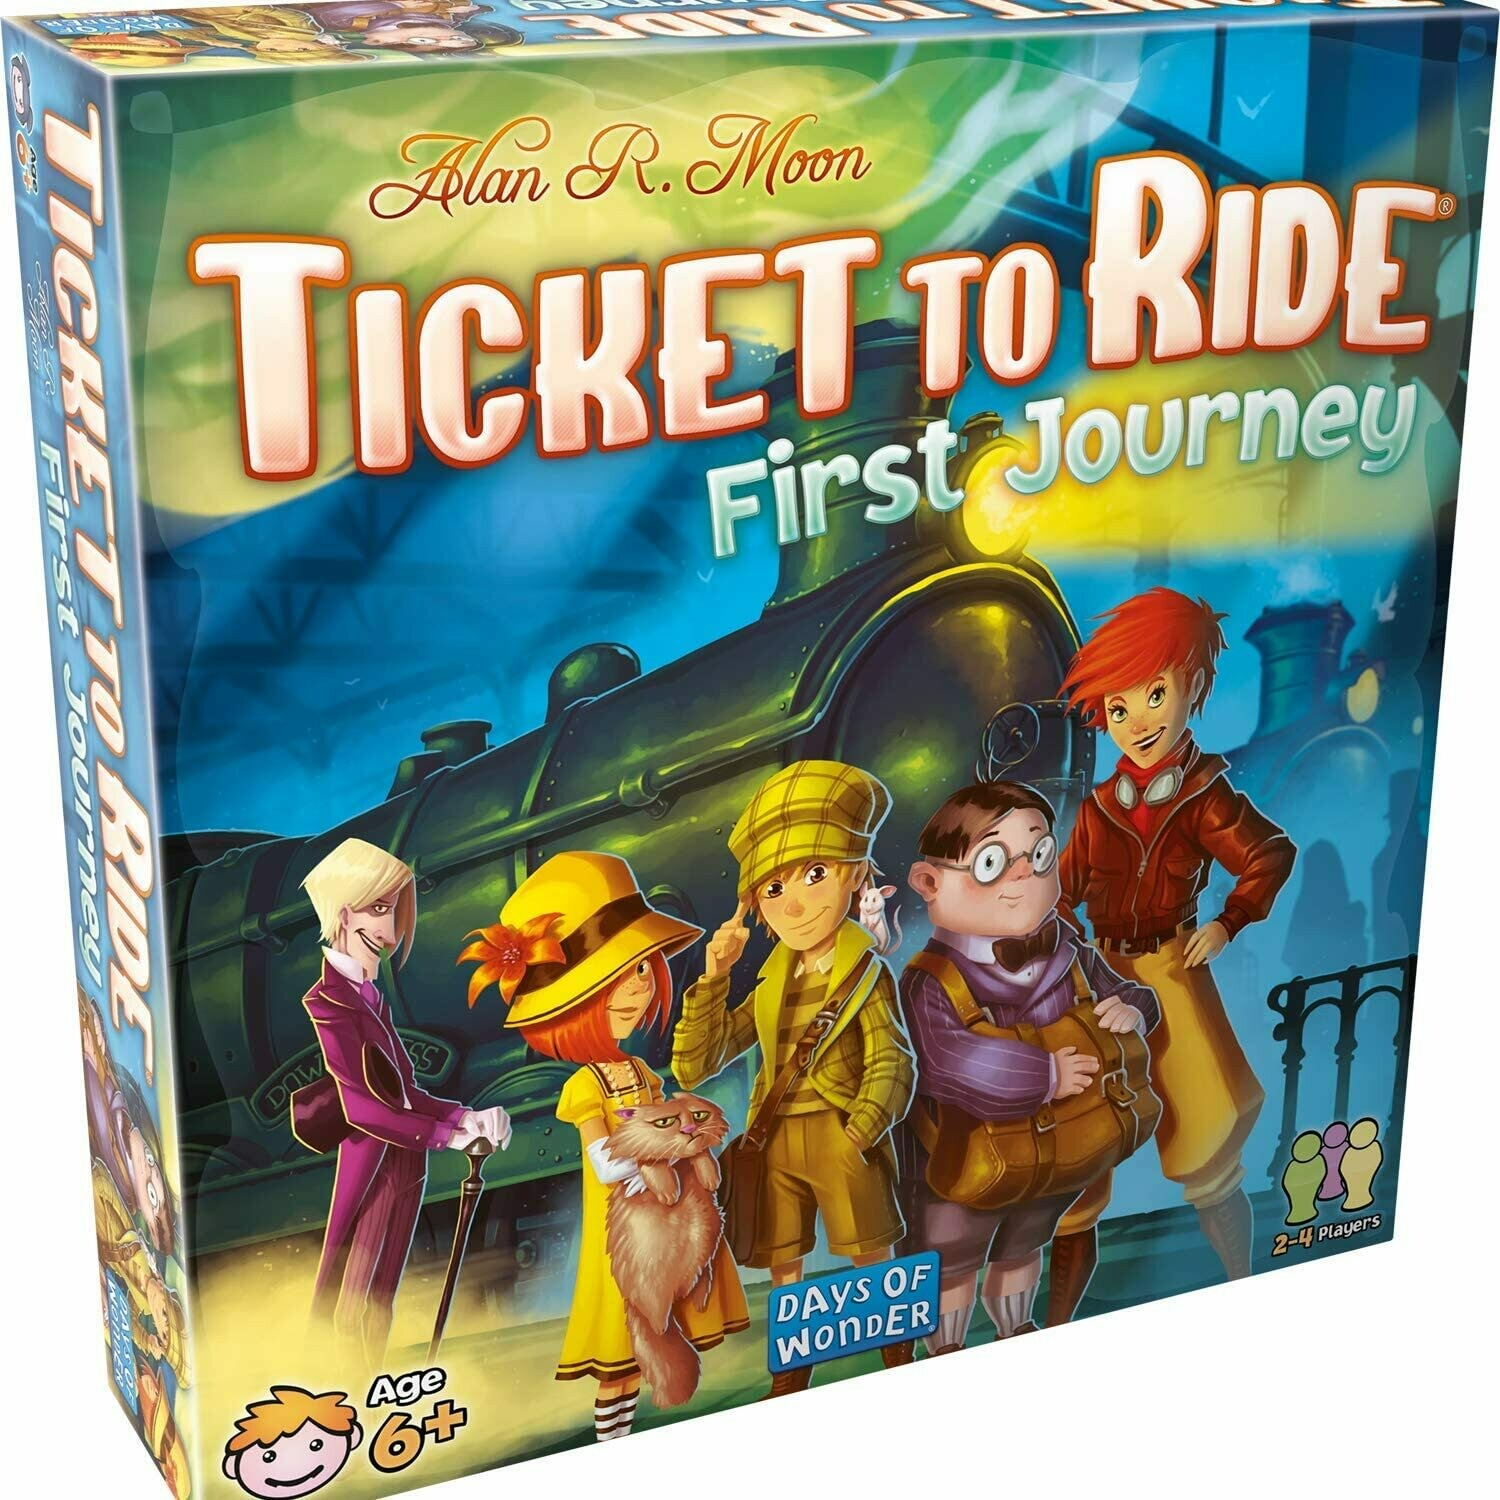 Ticket to Ride: First Journey